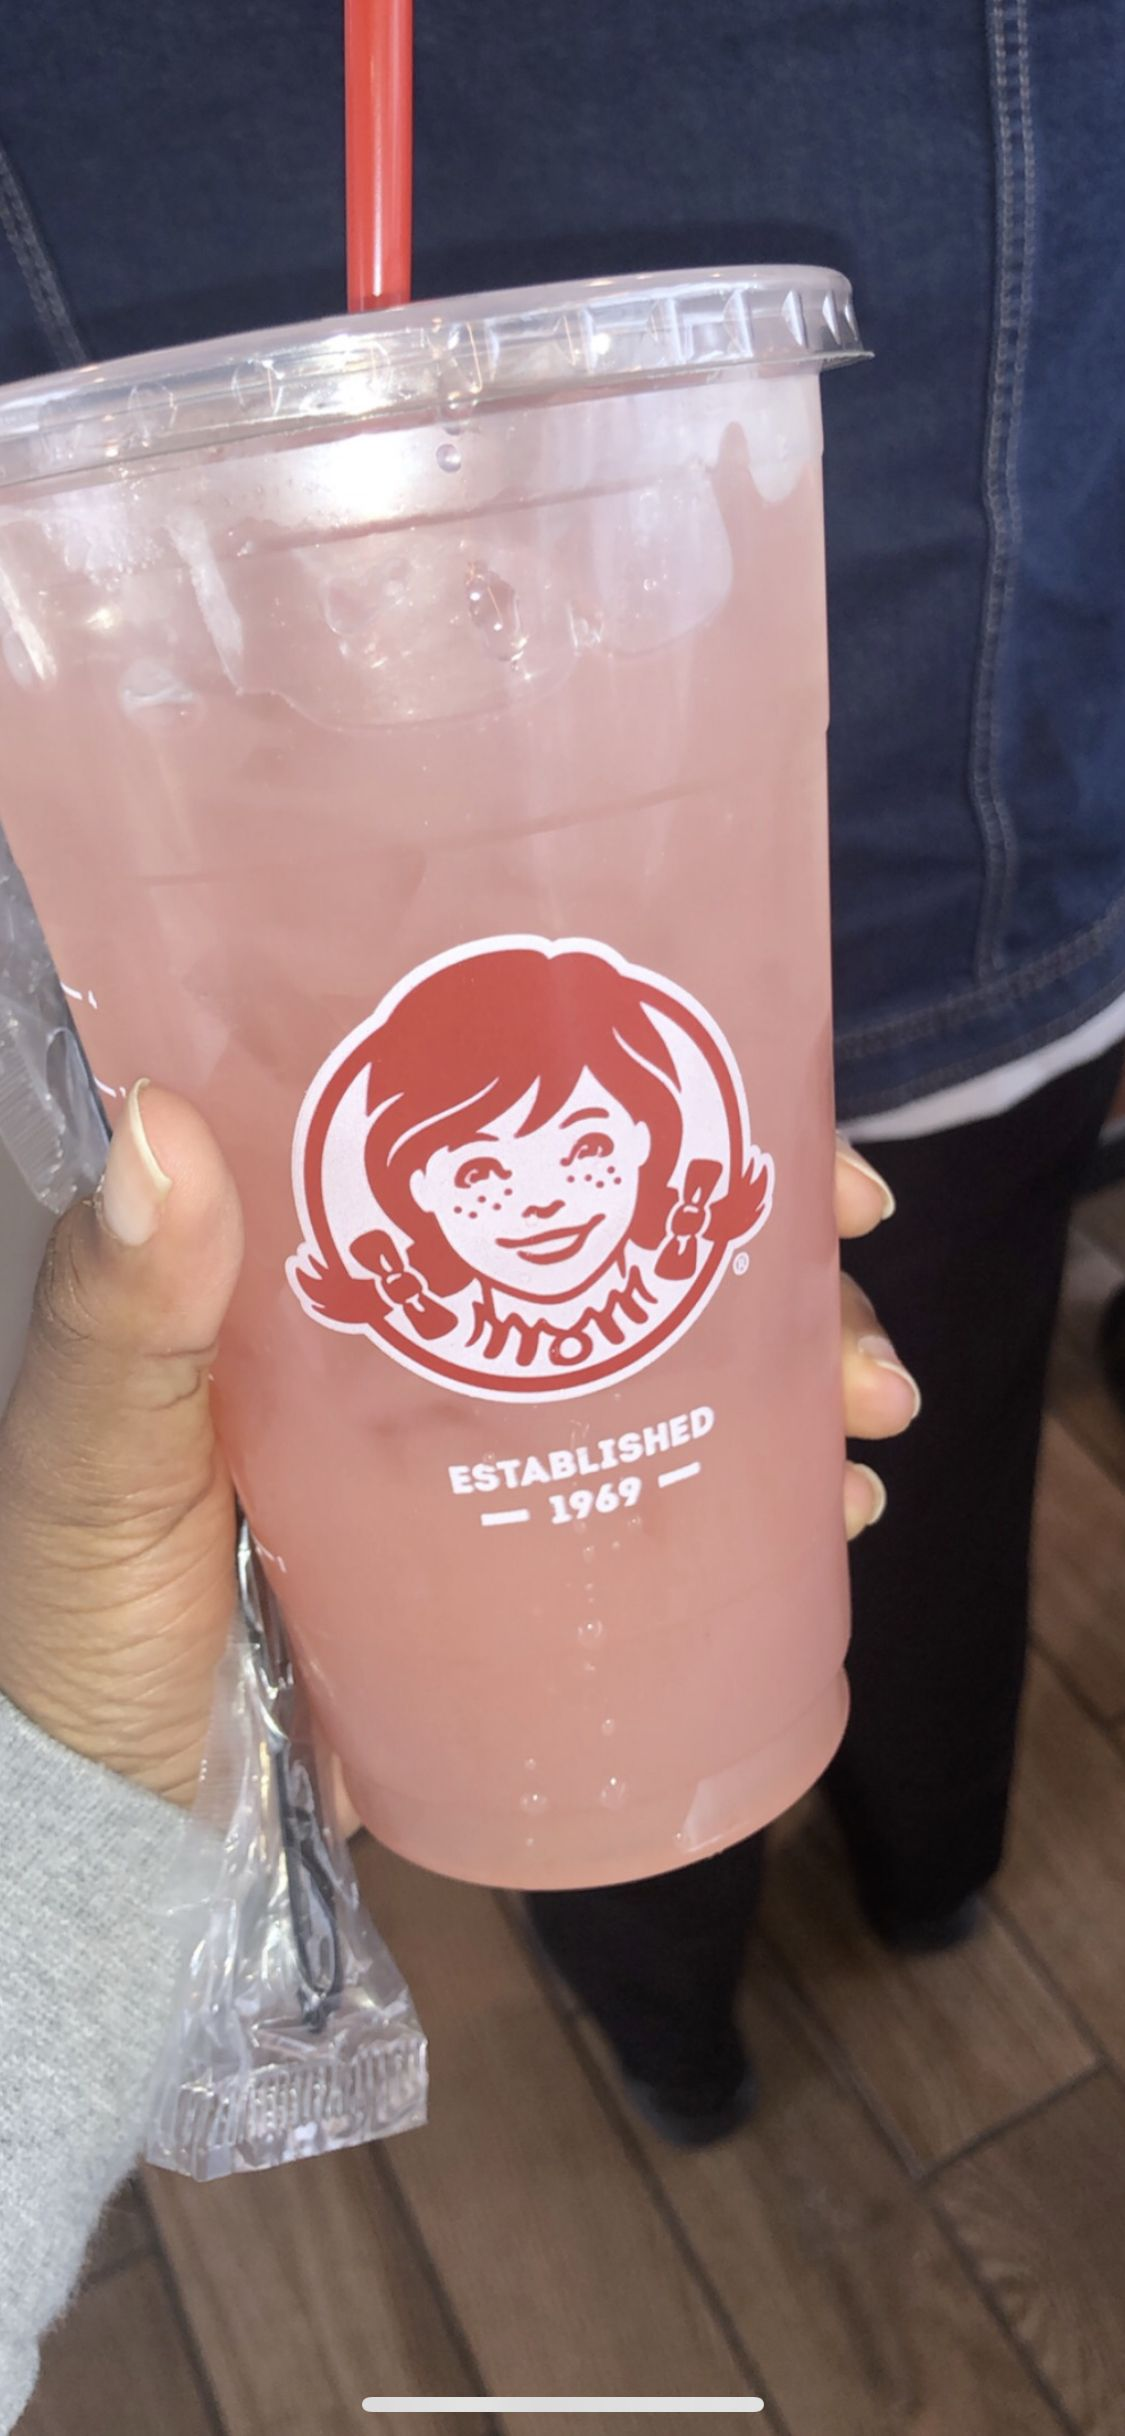 Pin by sydiana harris on food dunkin donuts coffee cup